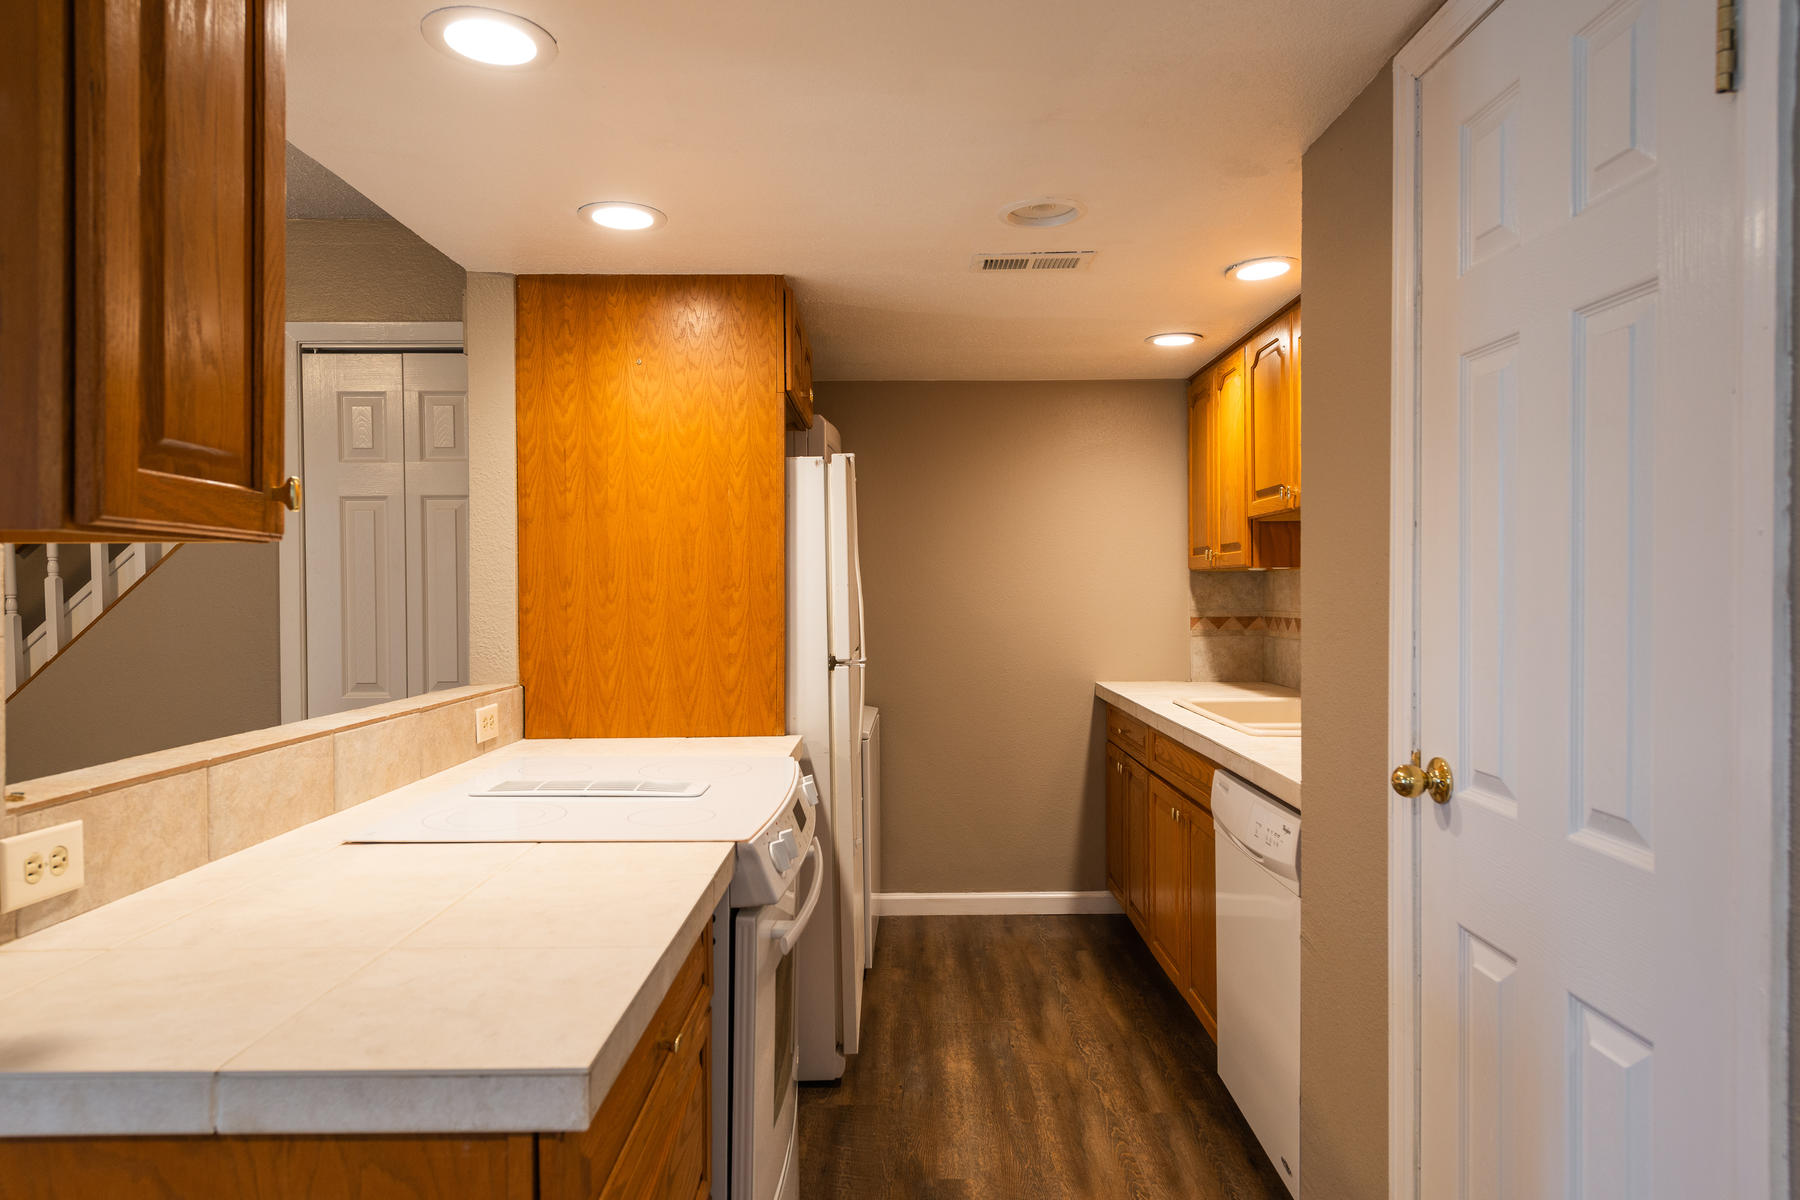 Additional photo for property listing at Wow! Incredible Price! 9195 E Lehigh Ave #154 Denver, Colorado 80237 United States